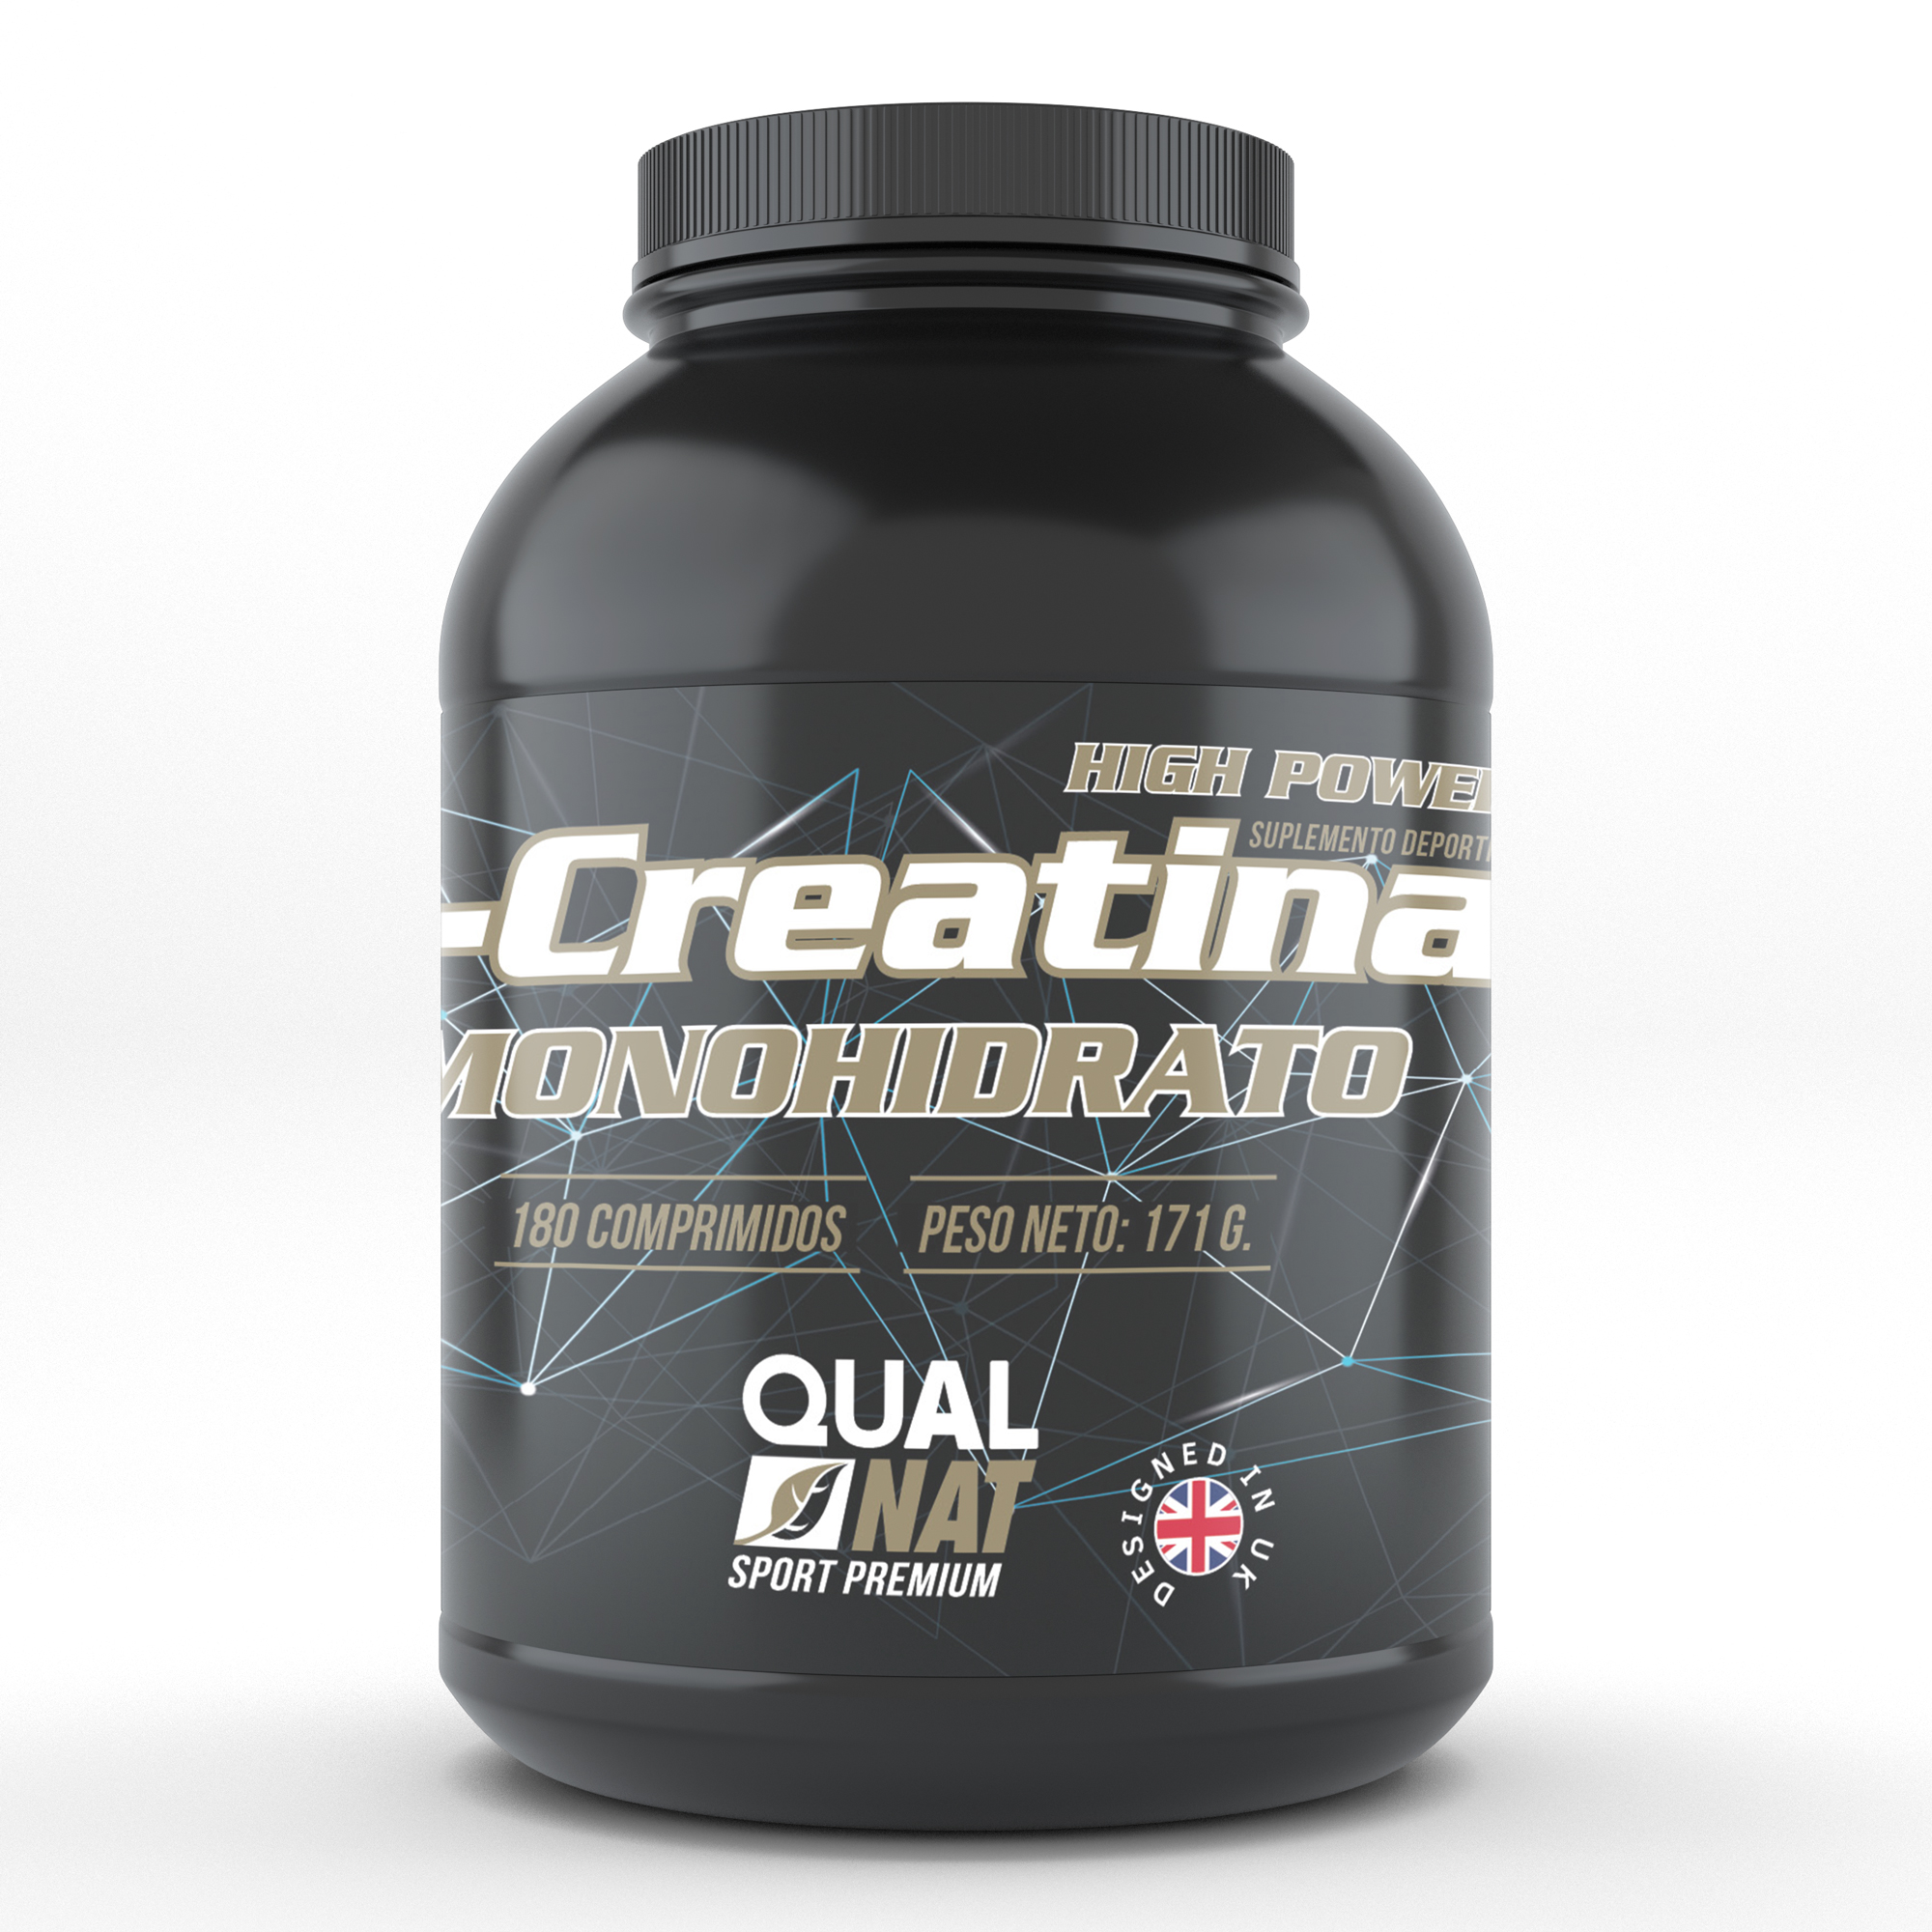 Creatine monohydrate | Sports supplement | Increases the sports performance and the mass | 180 tablets Qualnat